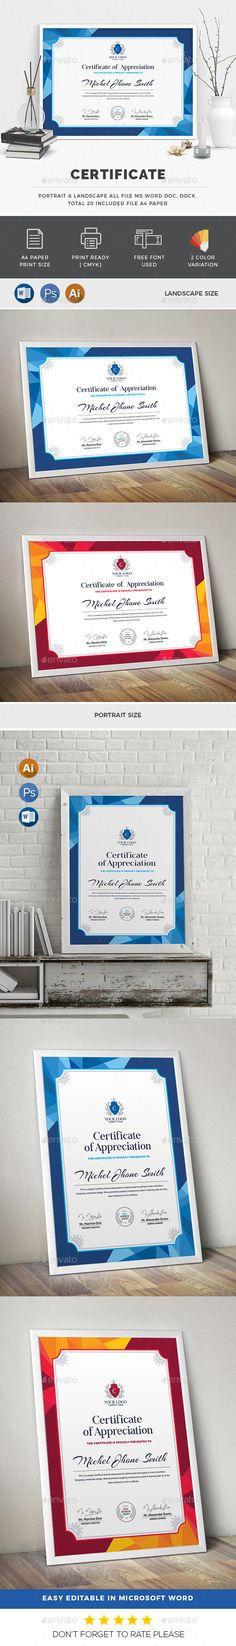 #Certificate - #Certificates Stationery Download here: https://graphicriver.net/item/certificate/19734482?ref=alena994